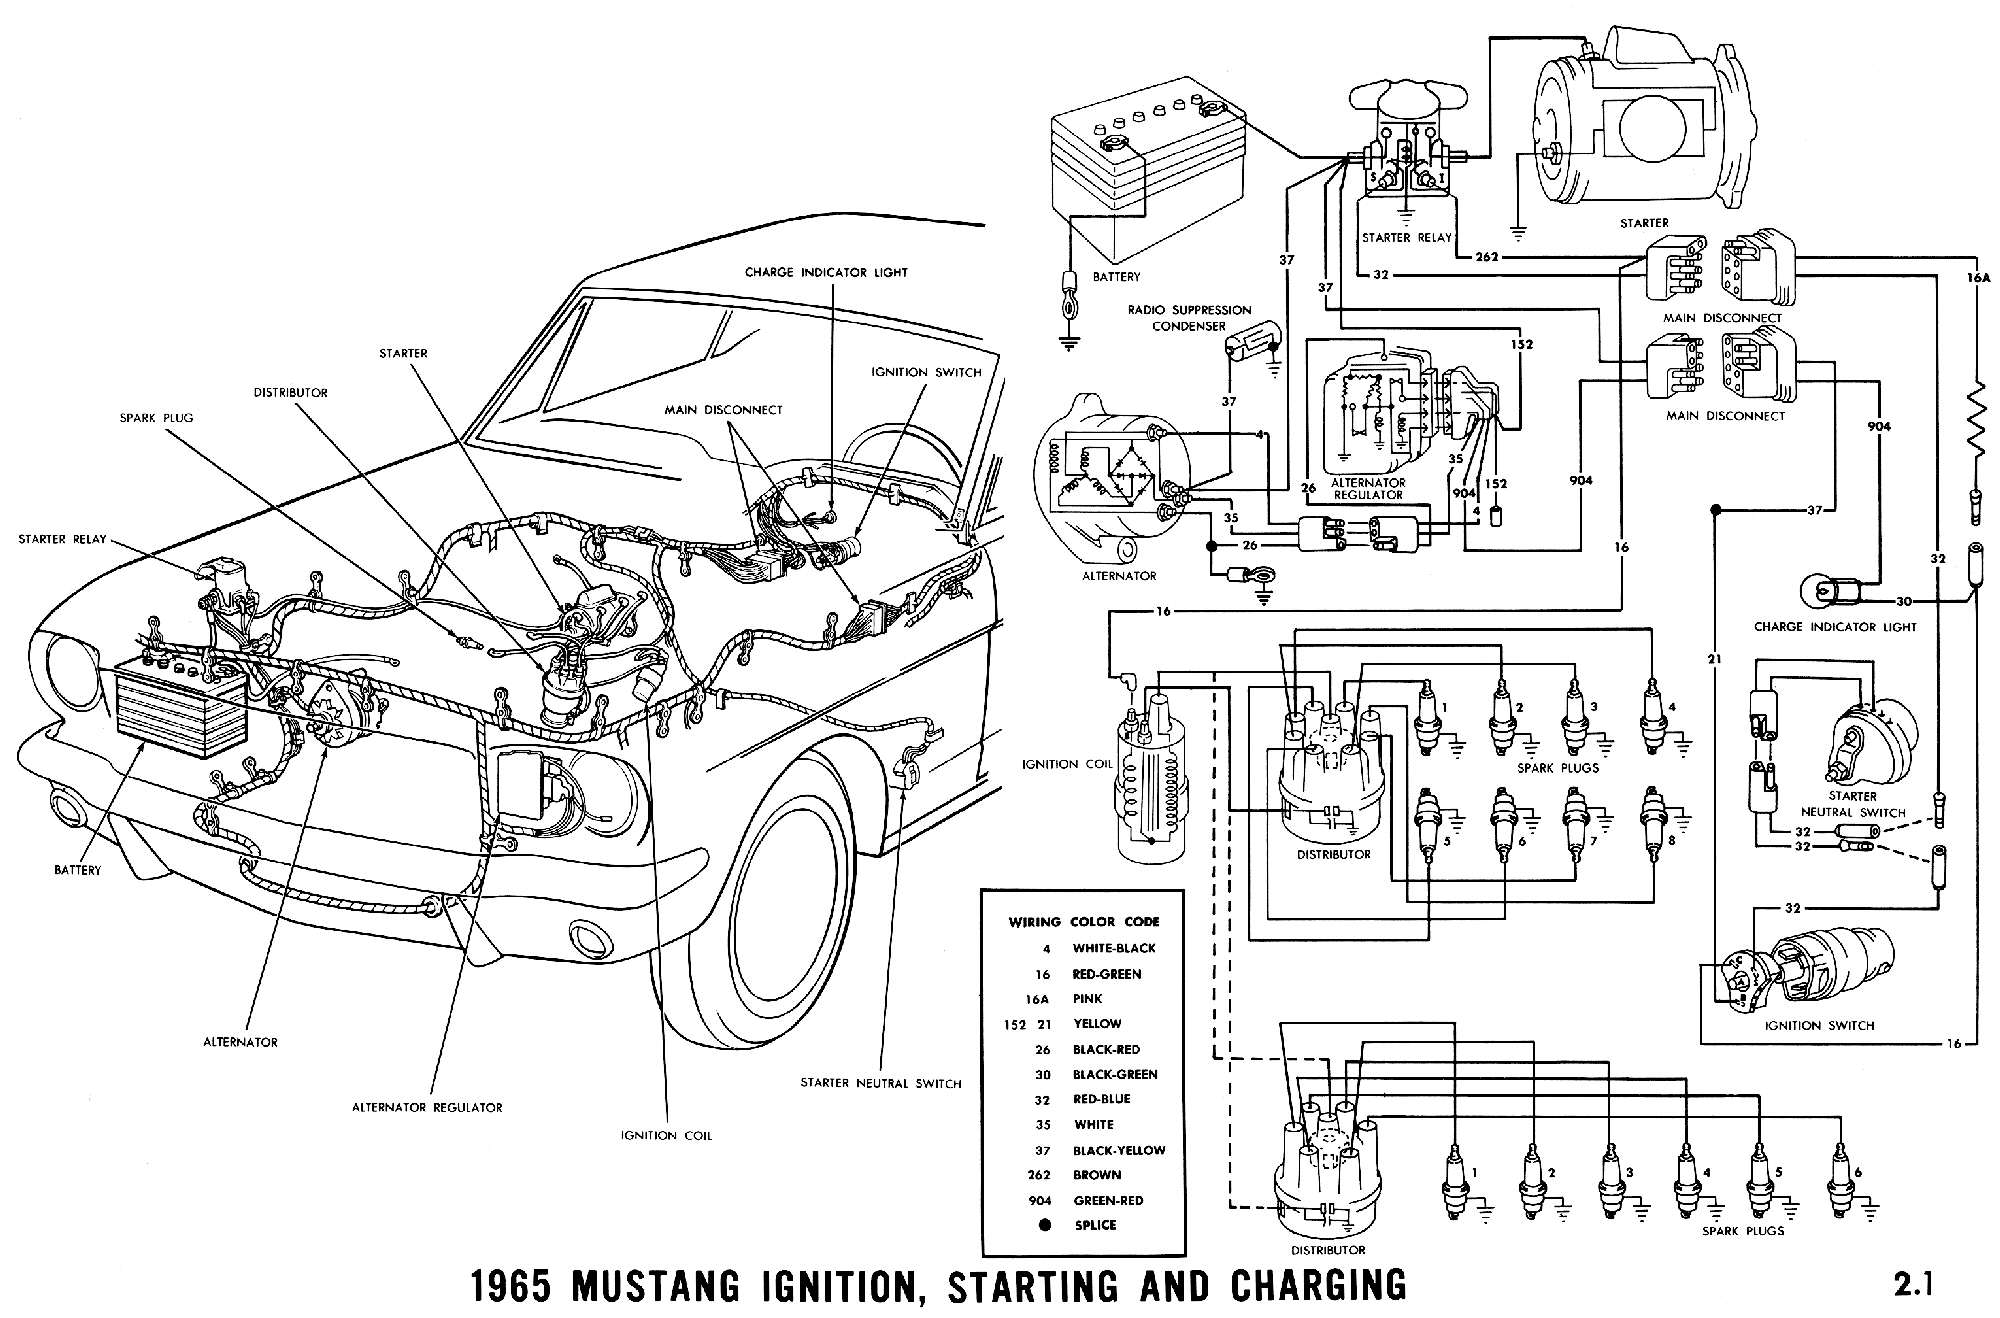 1965c 1965 mustang wiring diagrams average joe restoration 1965 ford falcon wiring diagram at aneh.co